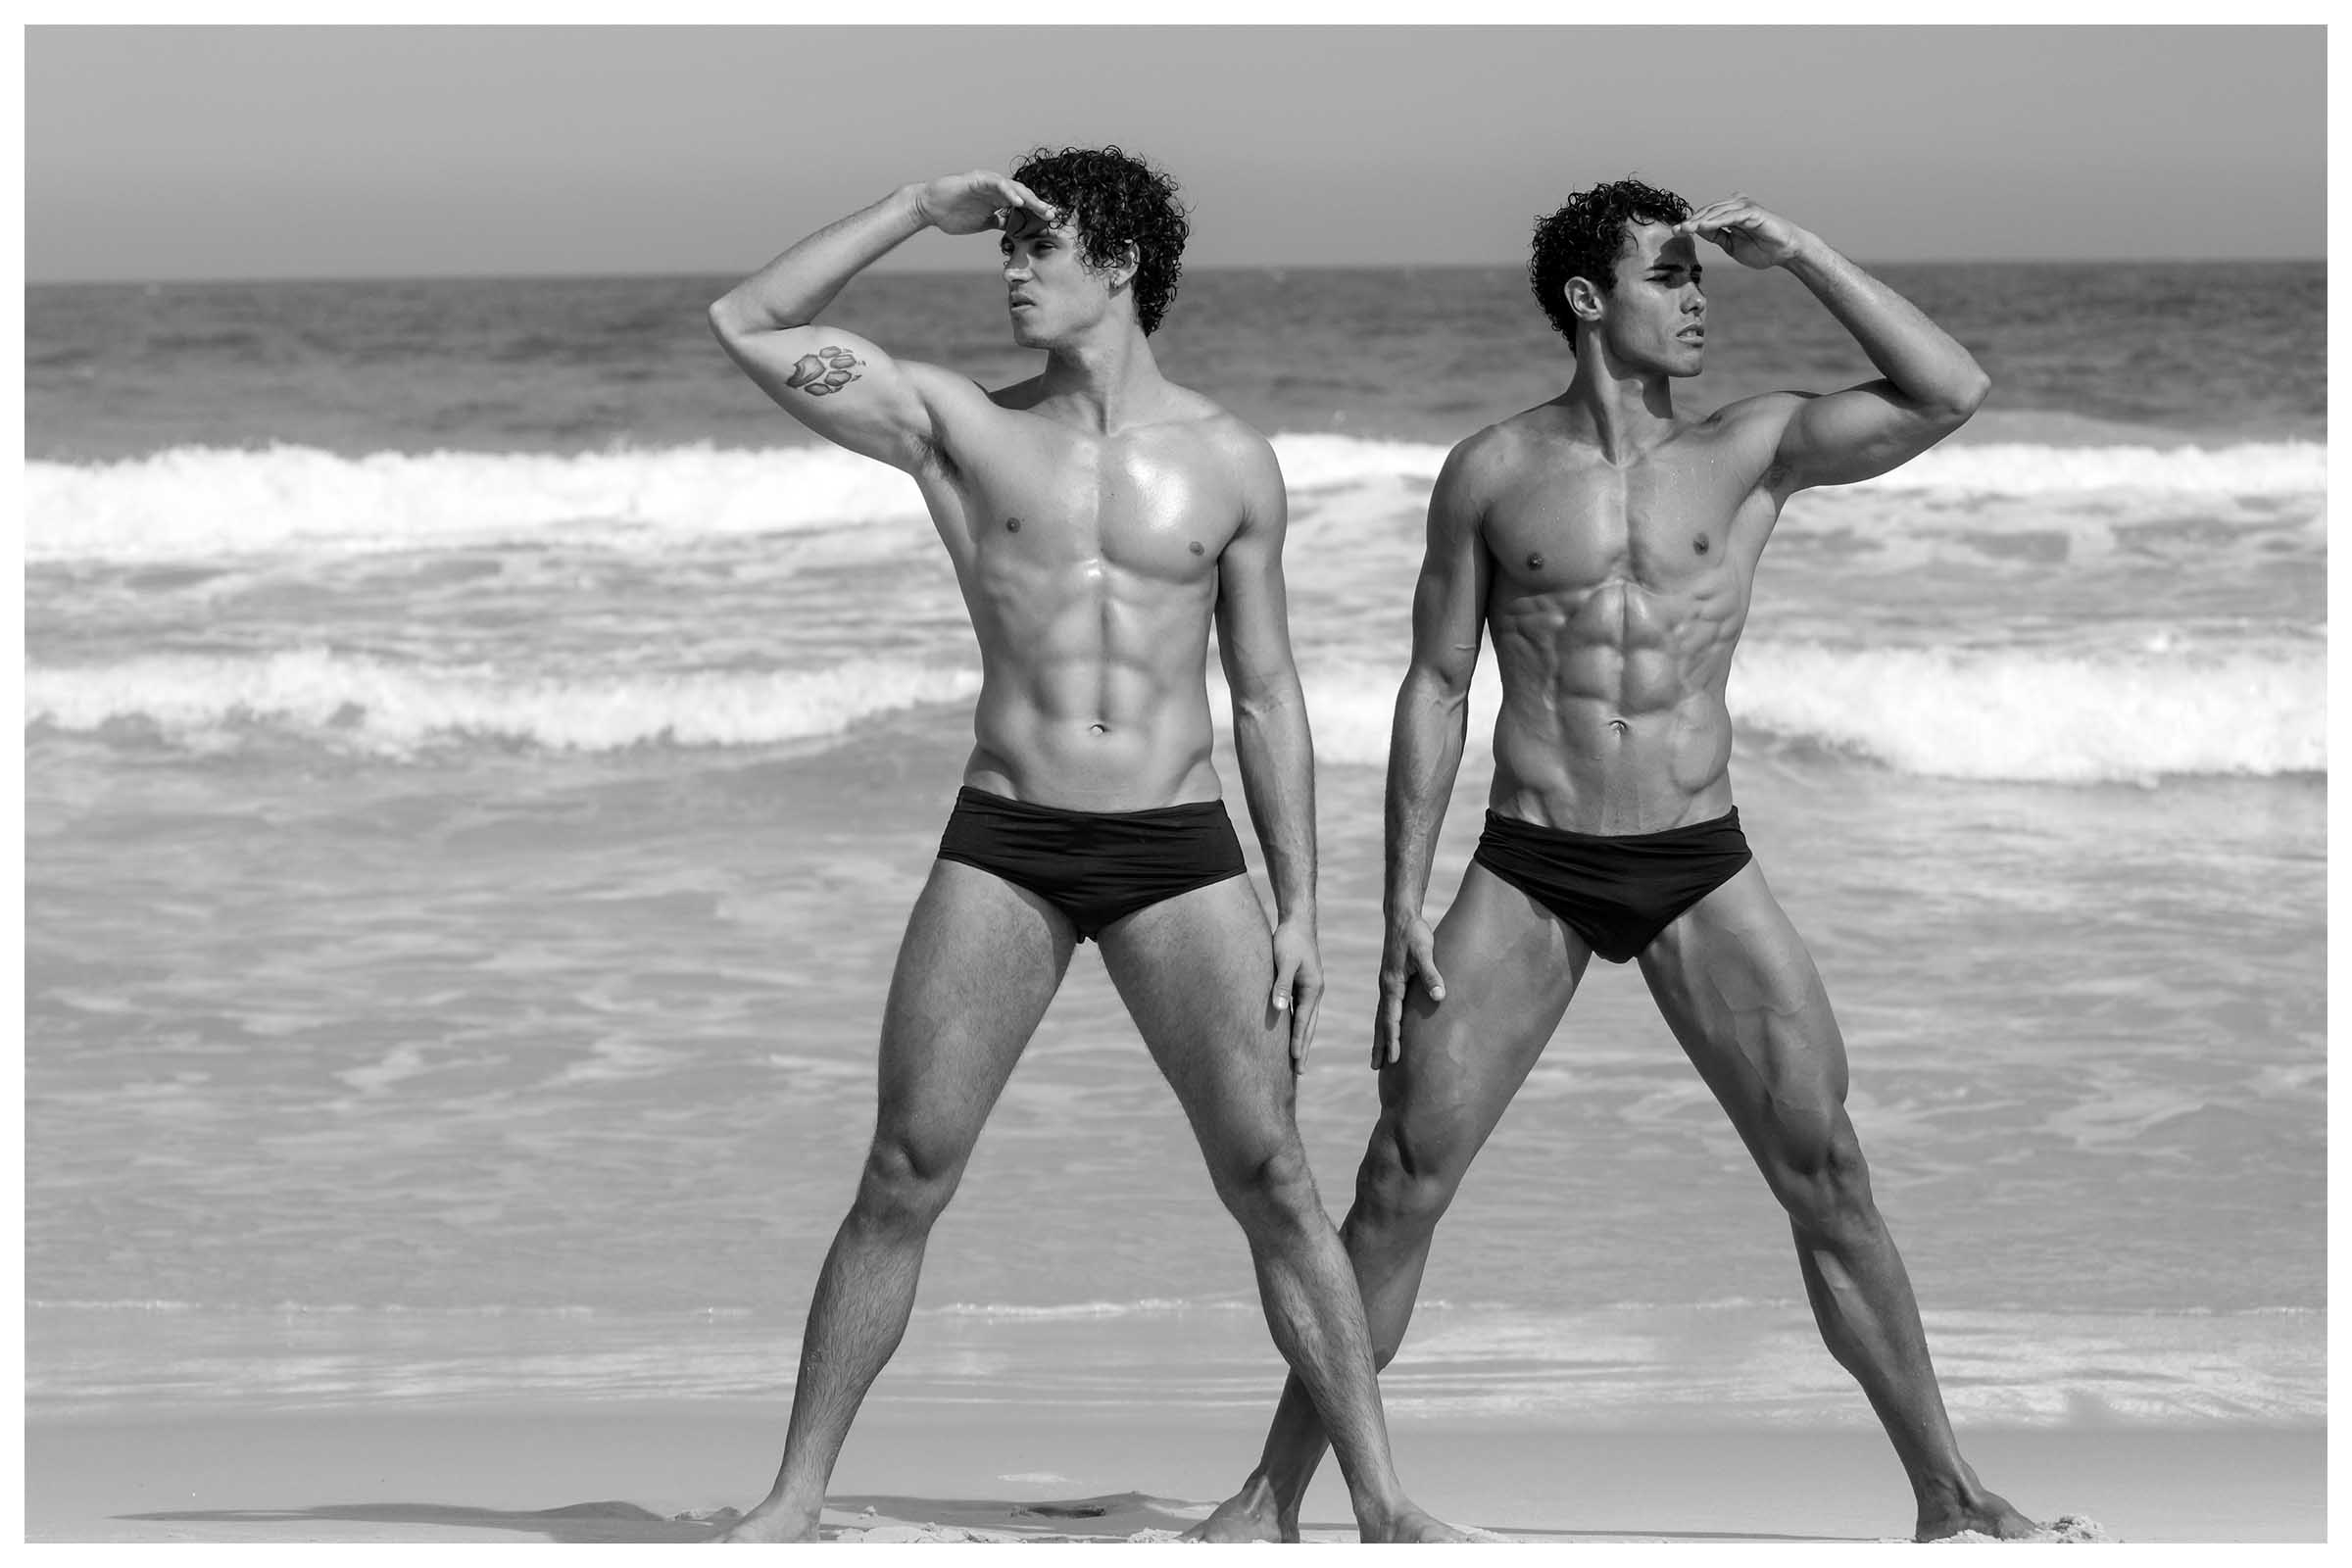 Guilherme Mathias and Max Marcolino by Marcio Farias for Brazilian Male Model